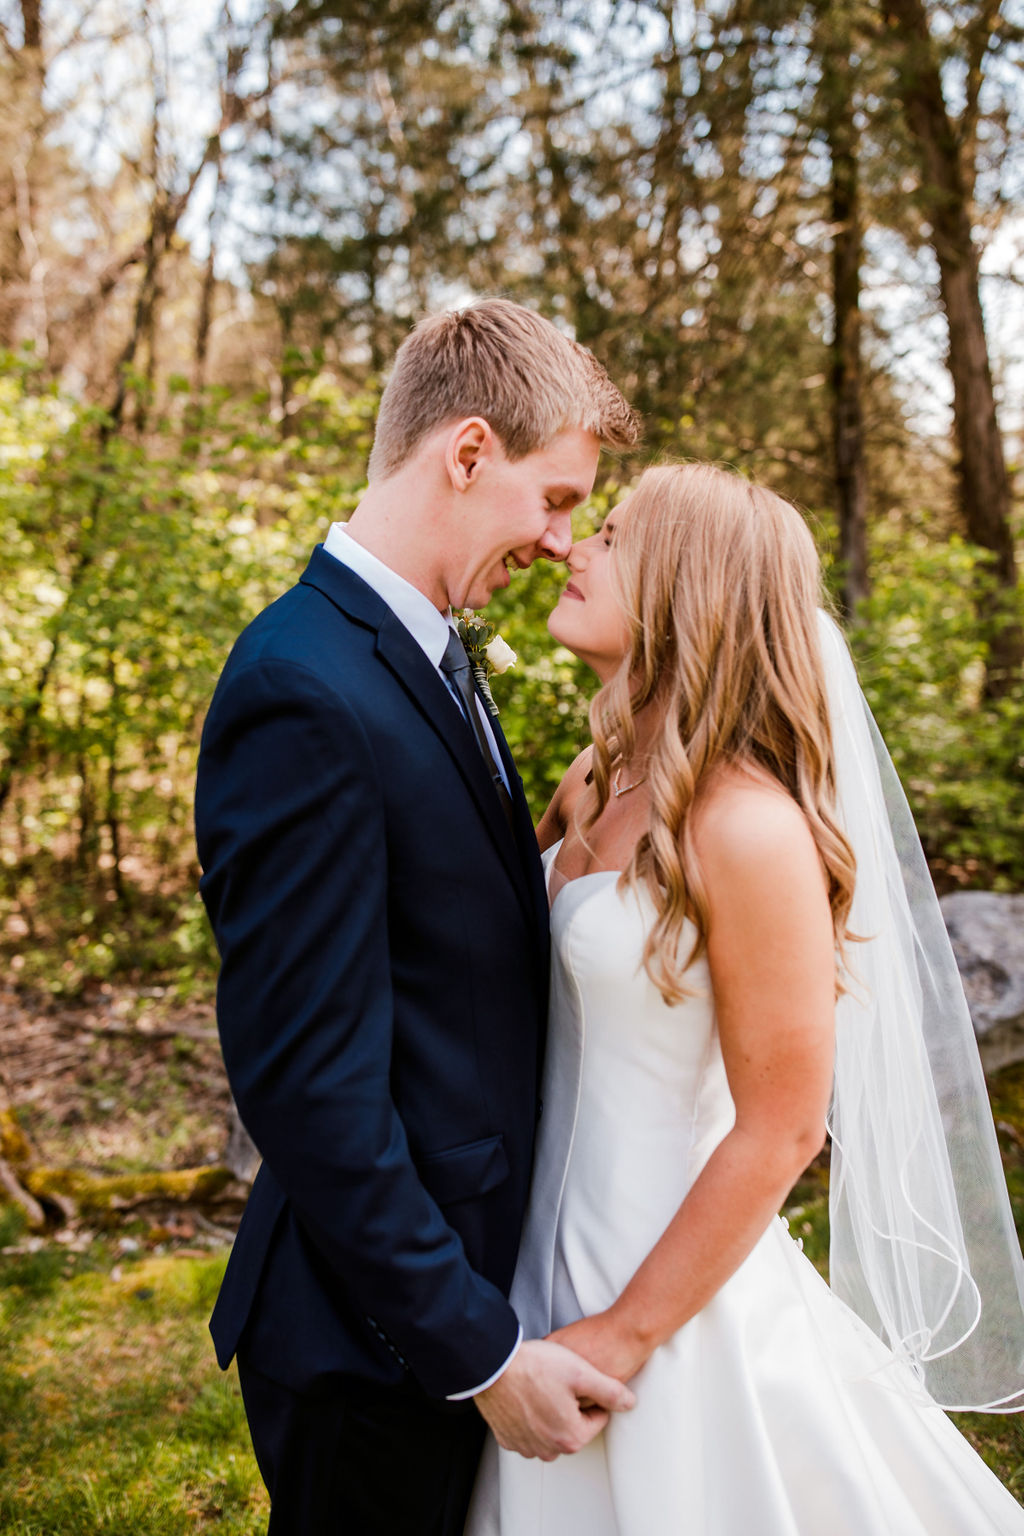 Outdoor Wedding Photos: Beautiful Graystone Quarry Wedding captured by John Myers Photography & Videography